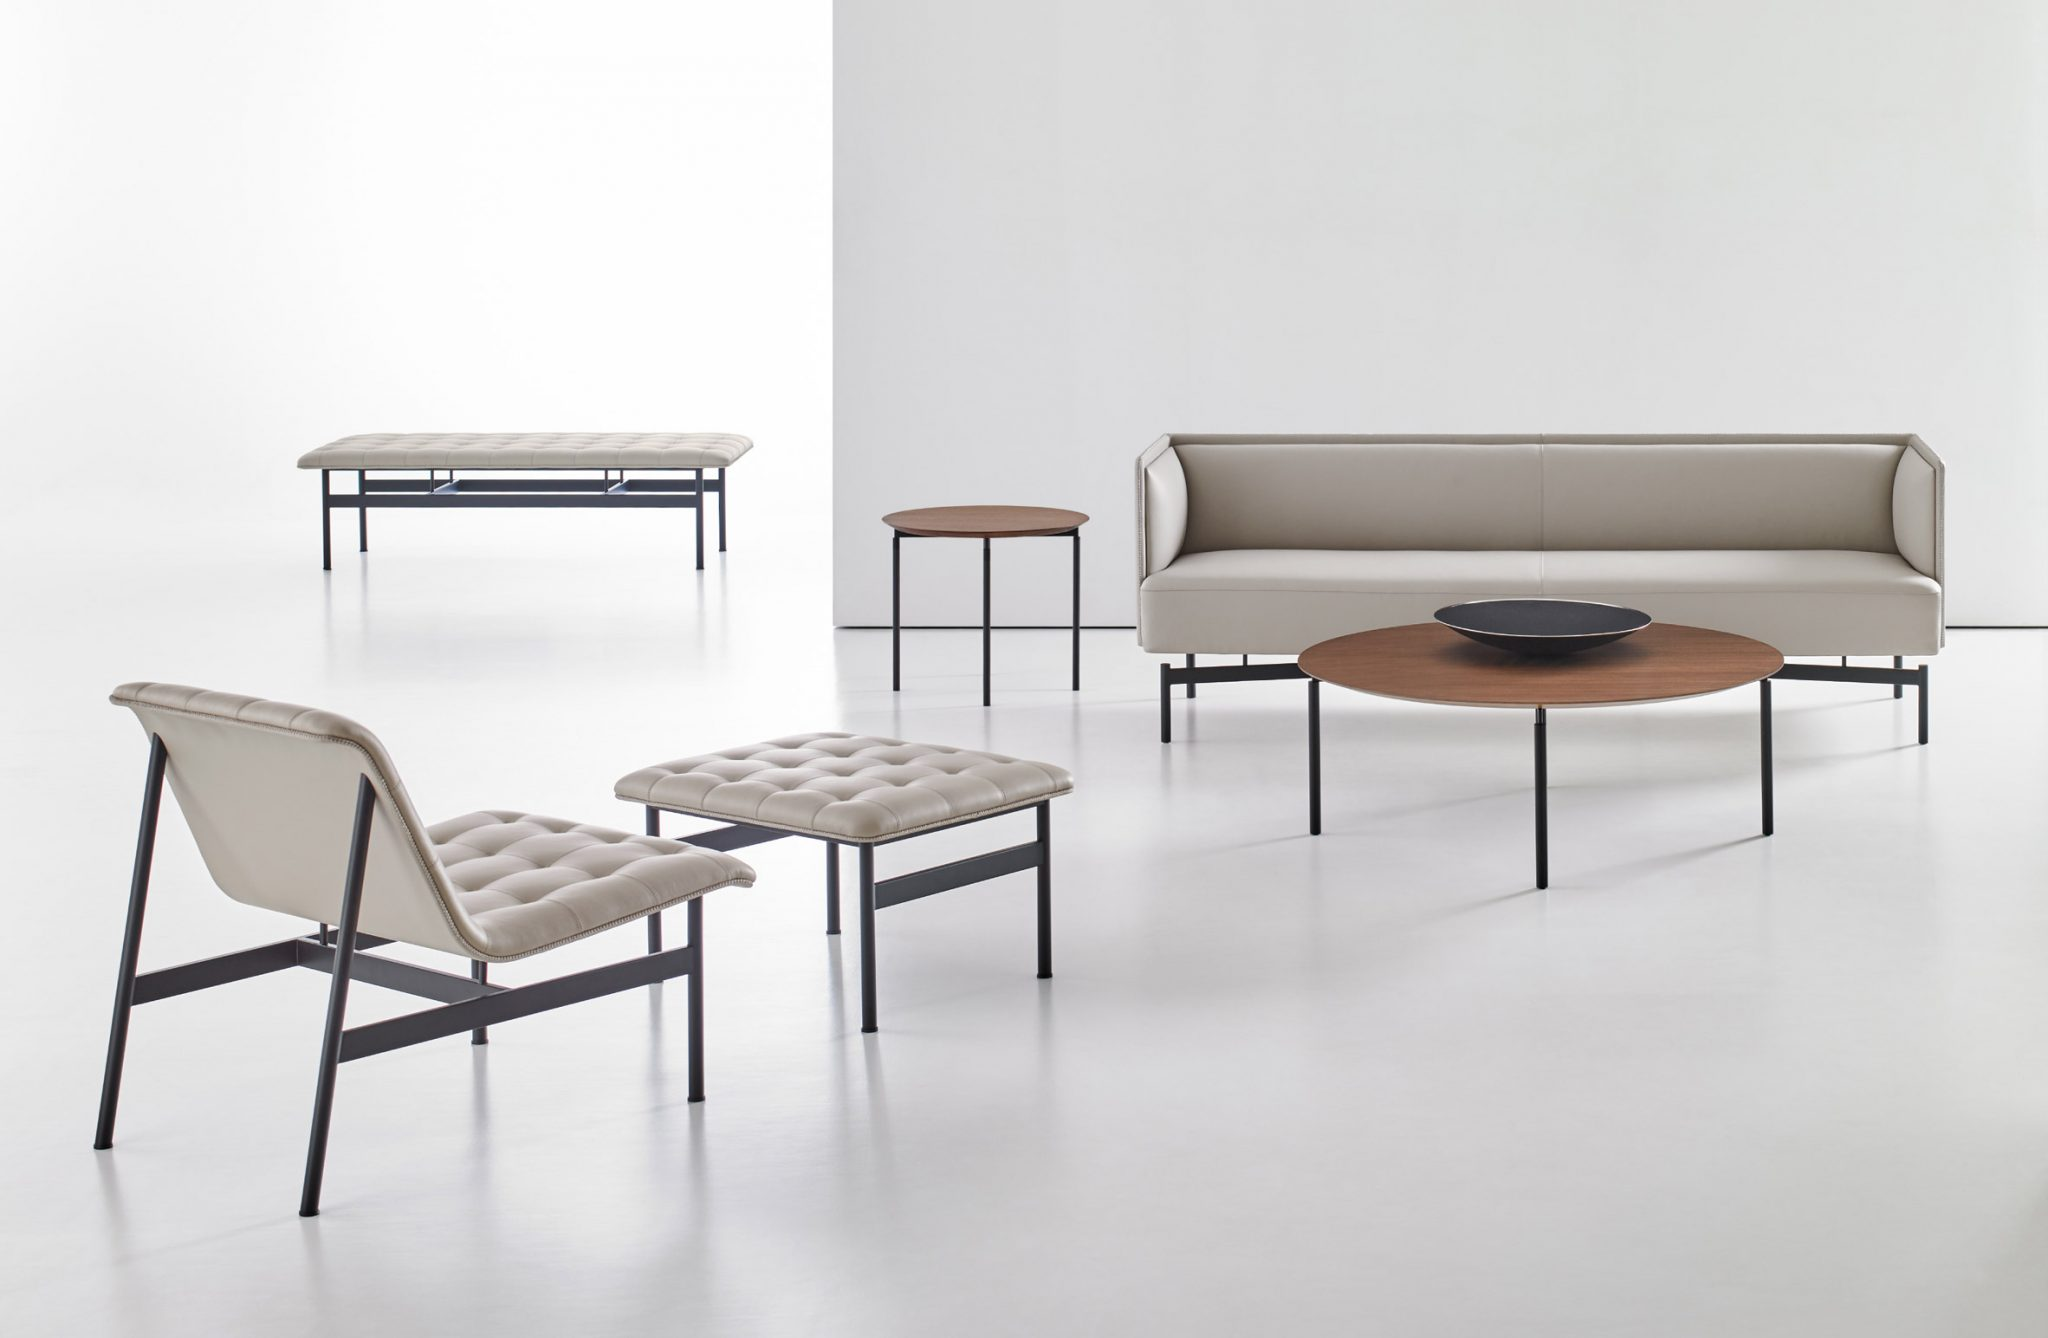 new-collection-charles-pollock-bernhardt-design-new-york-showroom-chair-furniture-design_dezeen_2364_col_3